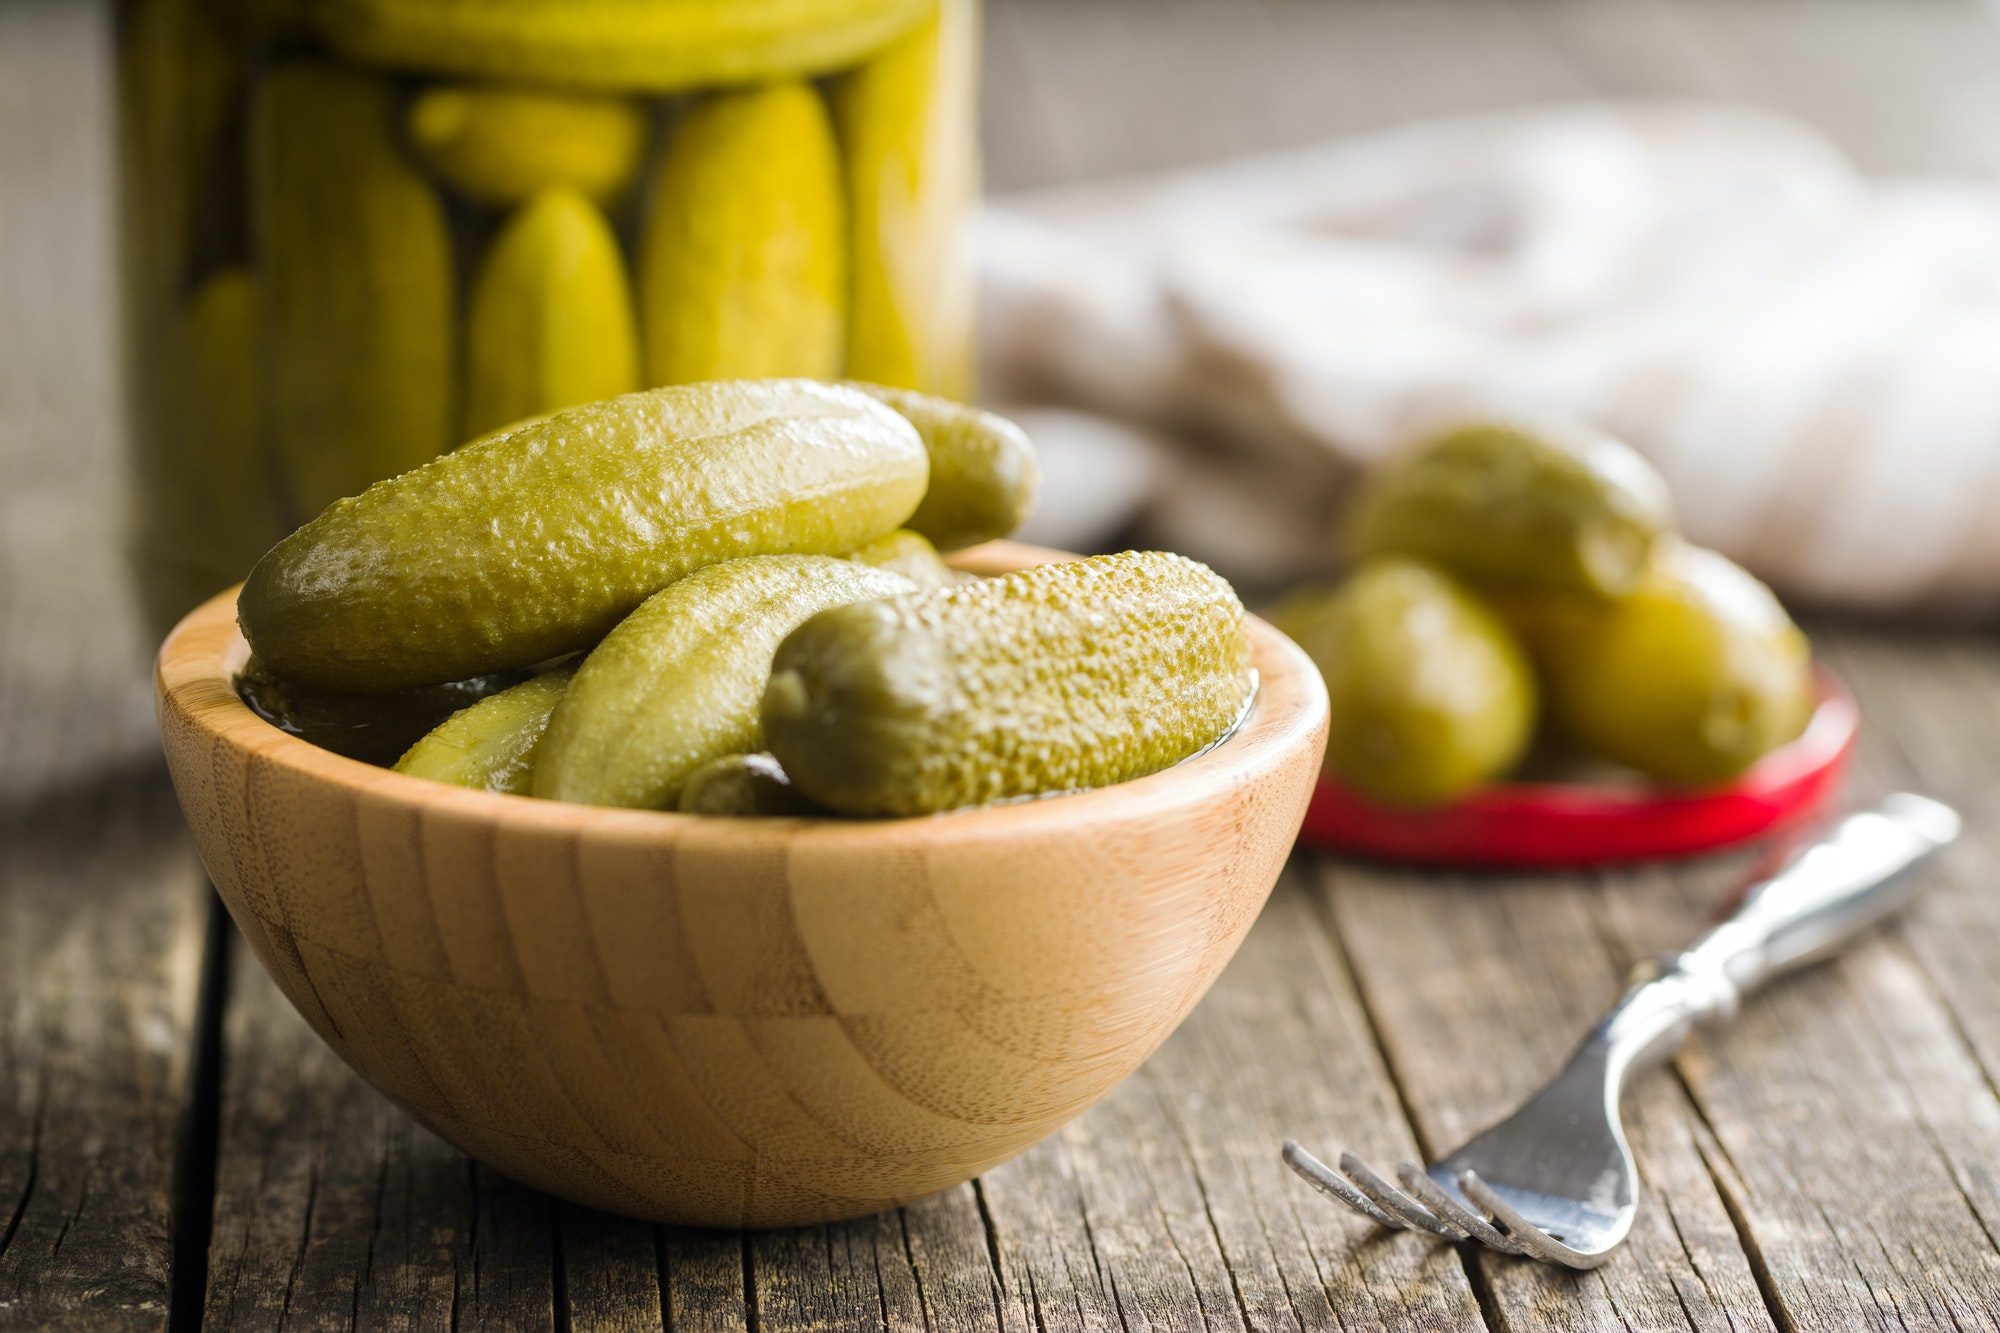 Pickles in bowl. Preserved cucumbers.